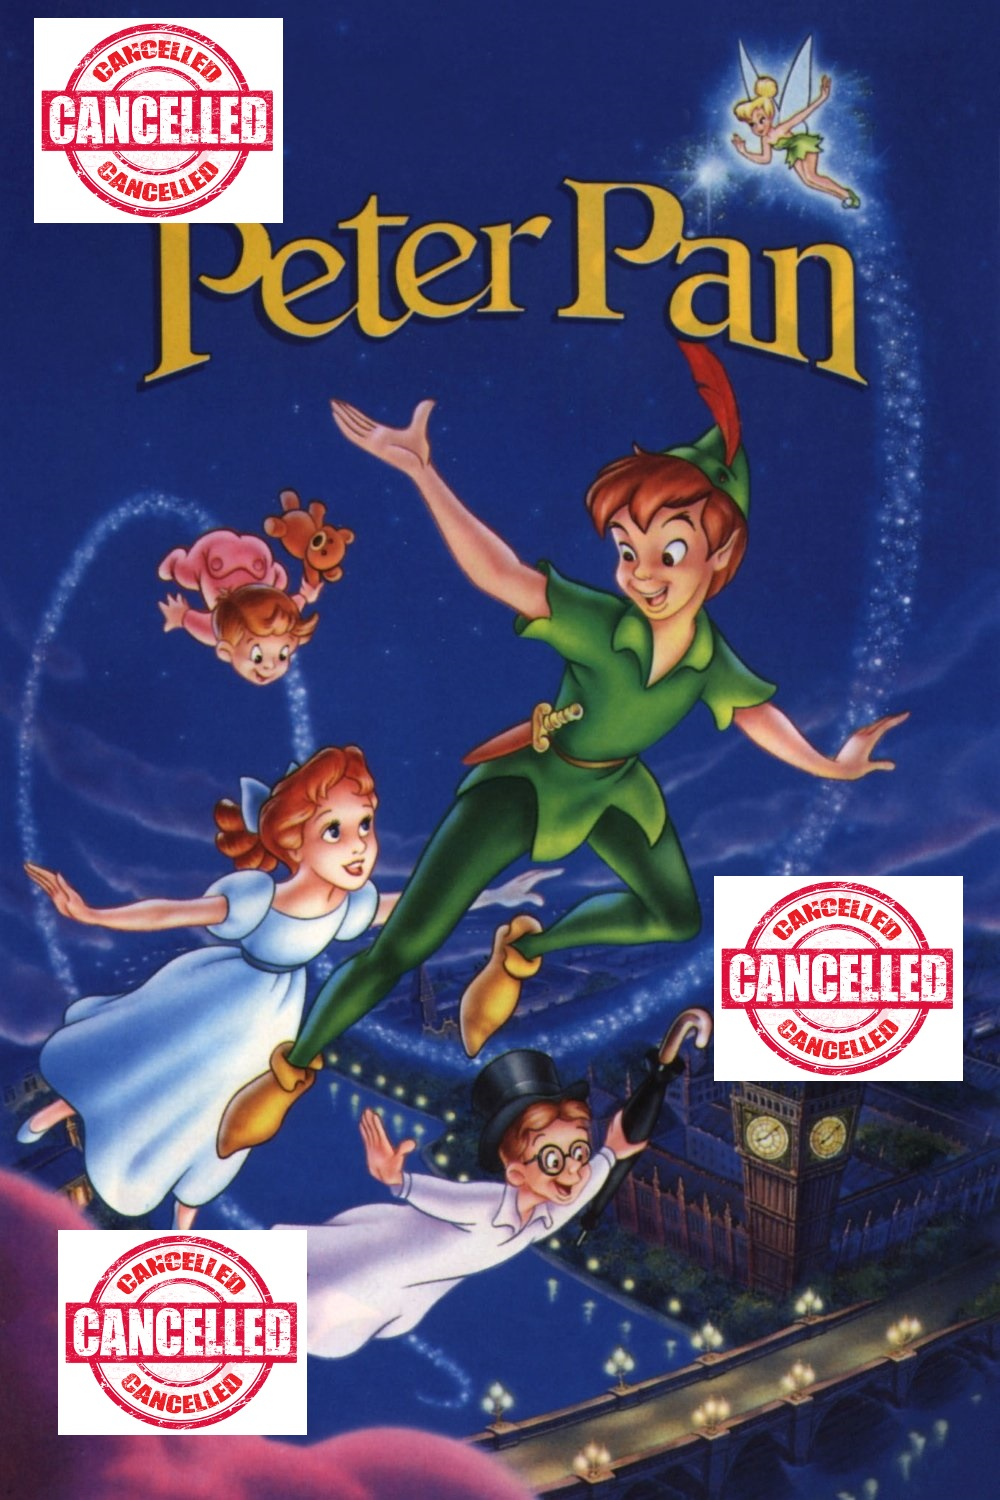 Peter-pan-cancelled